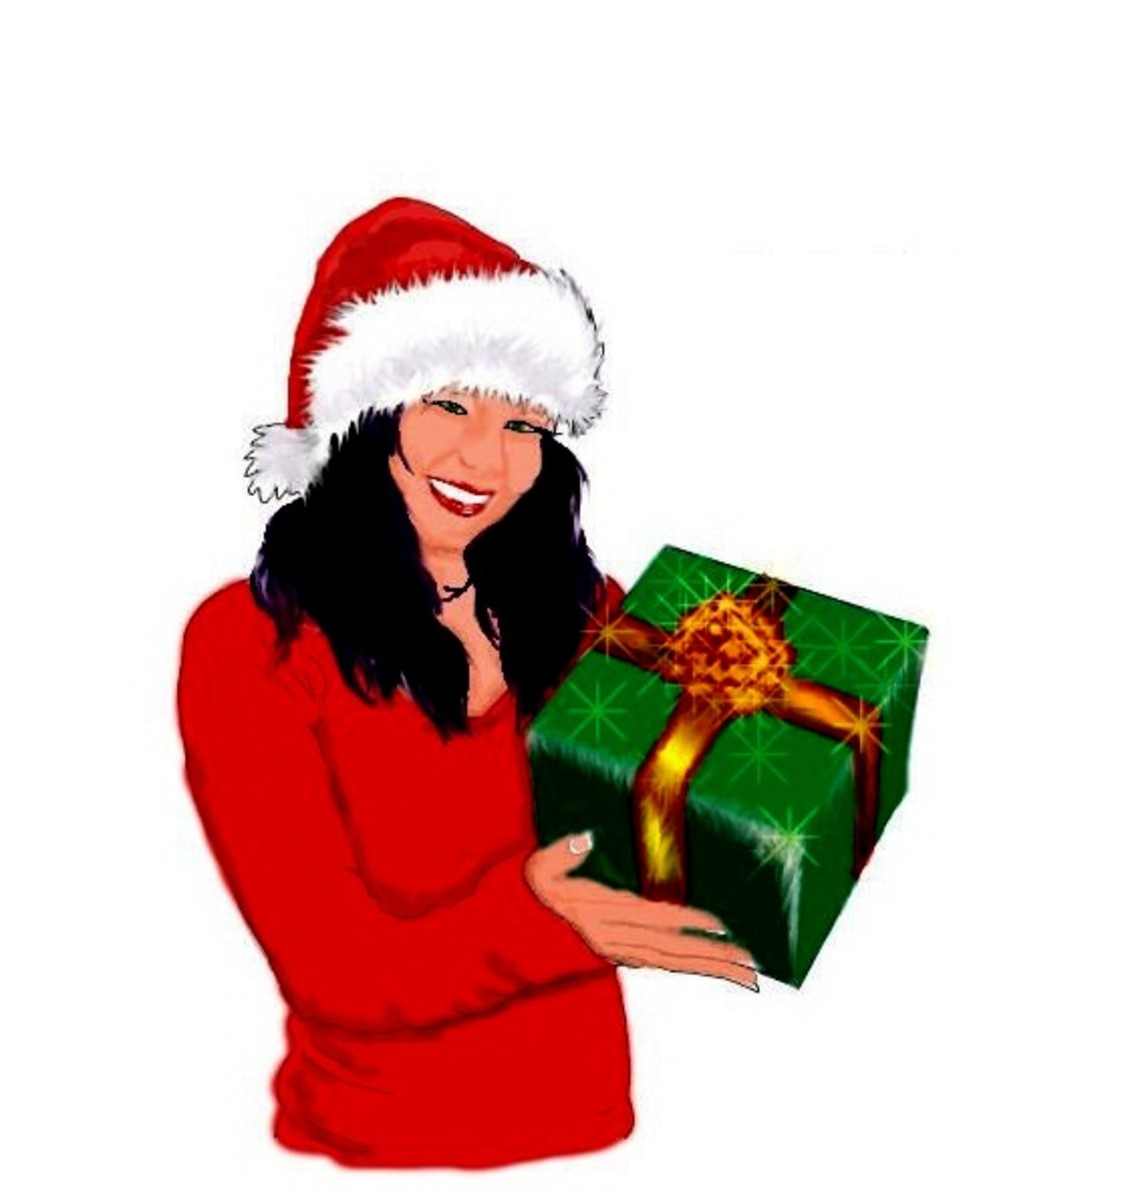 Why do we Give Gifts? 9 Reasons People buy Presents | hubpages